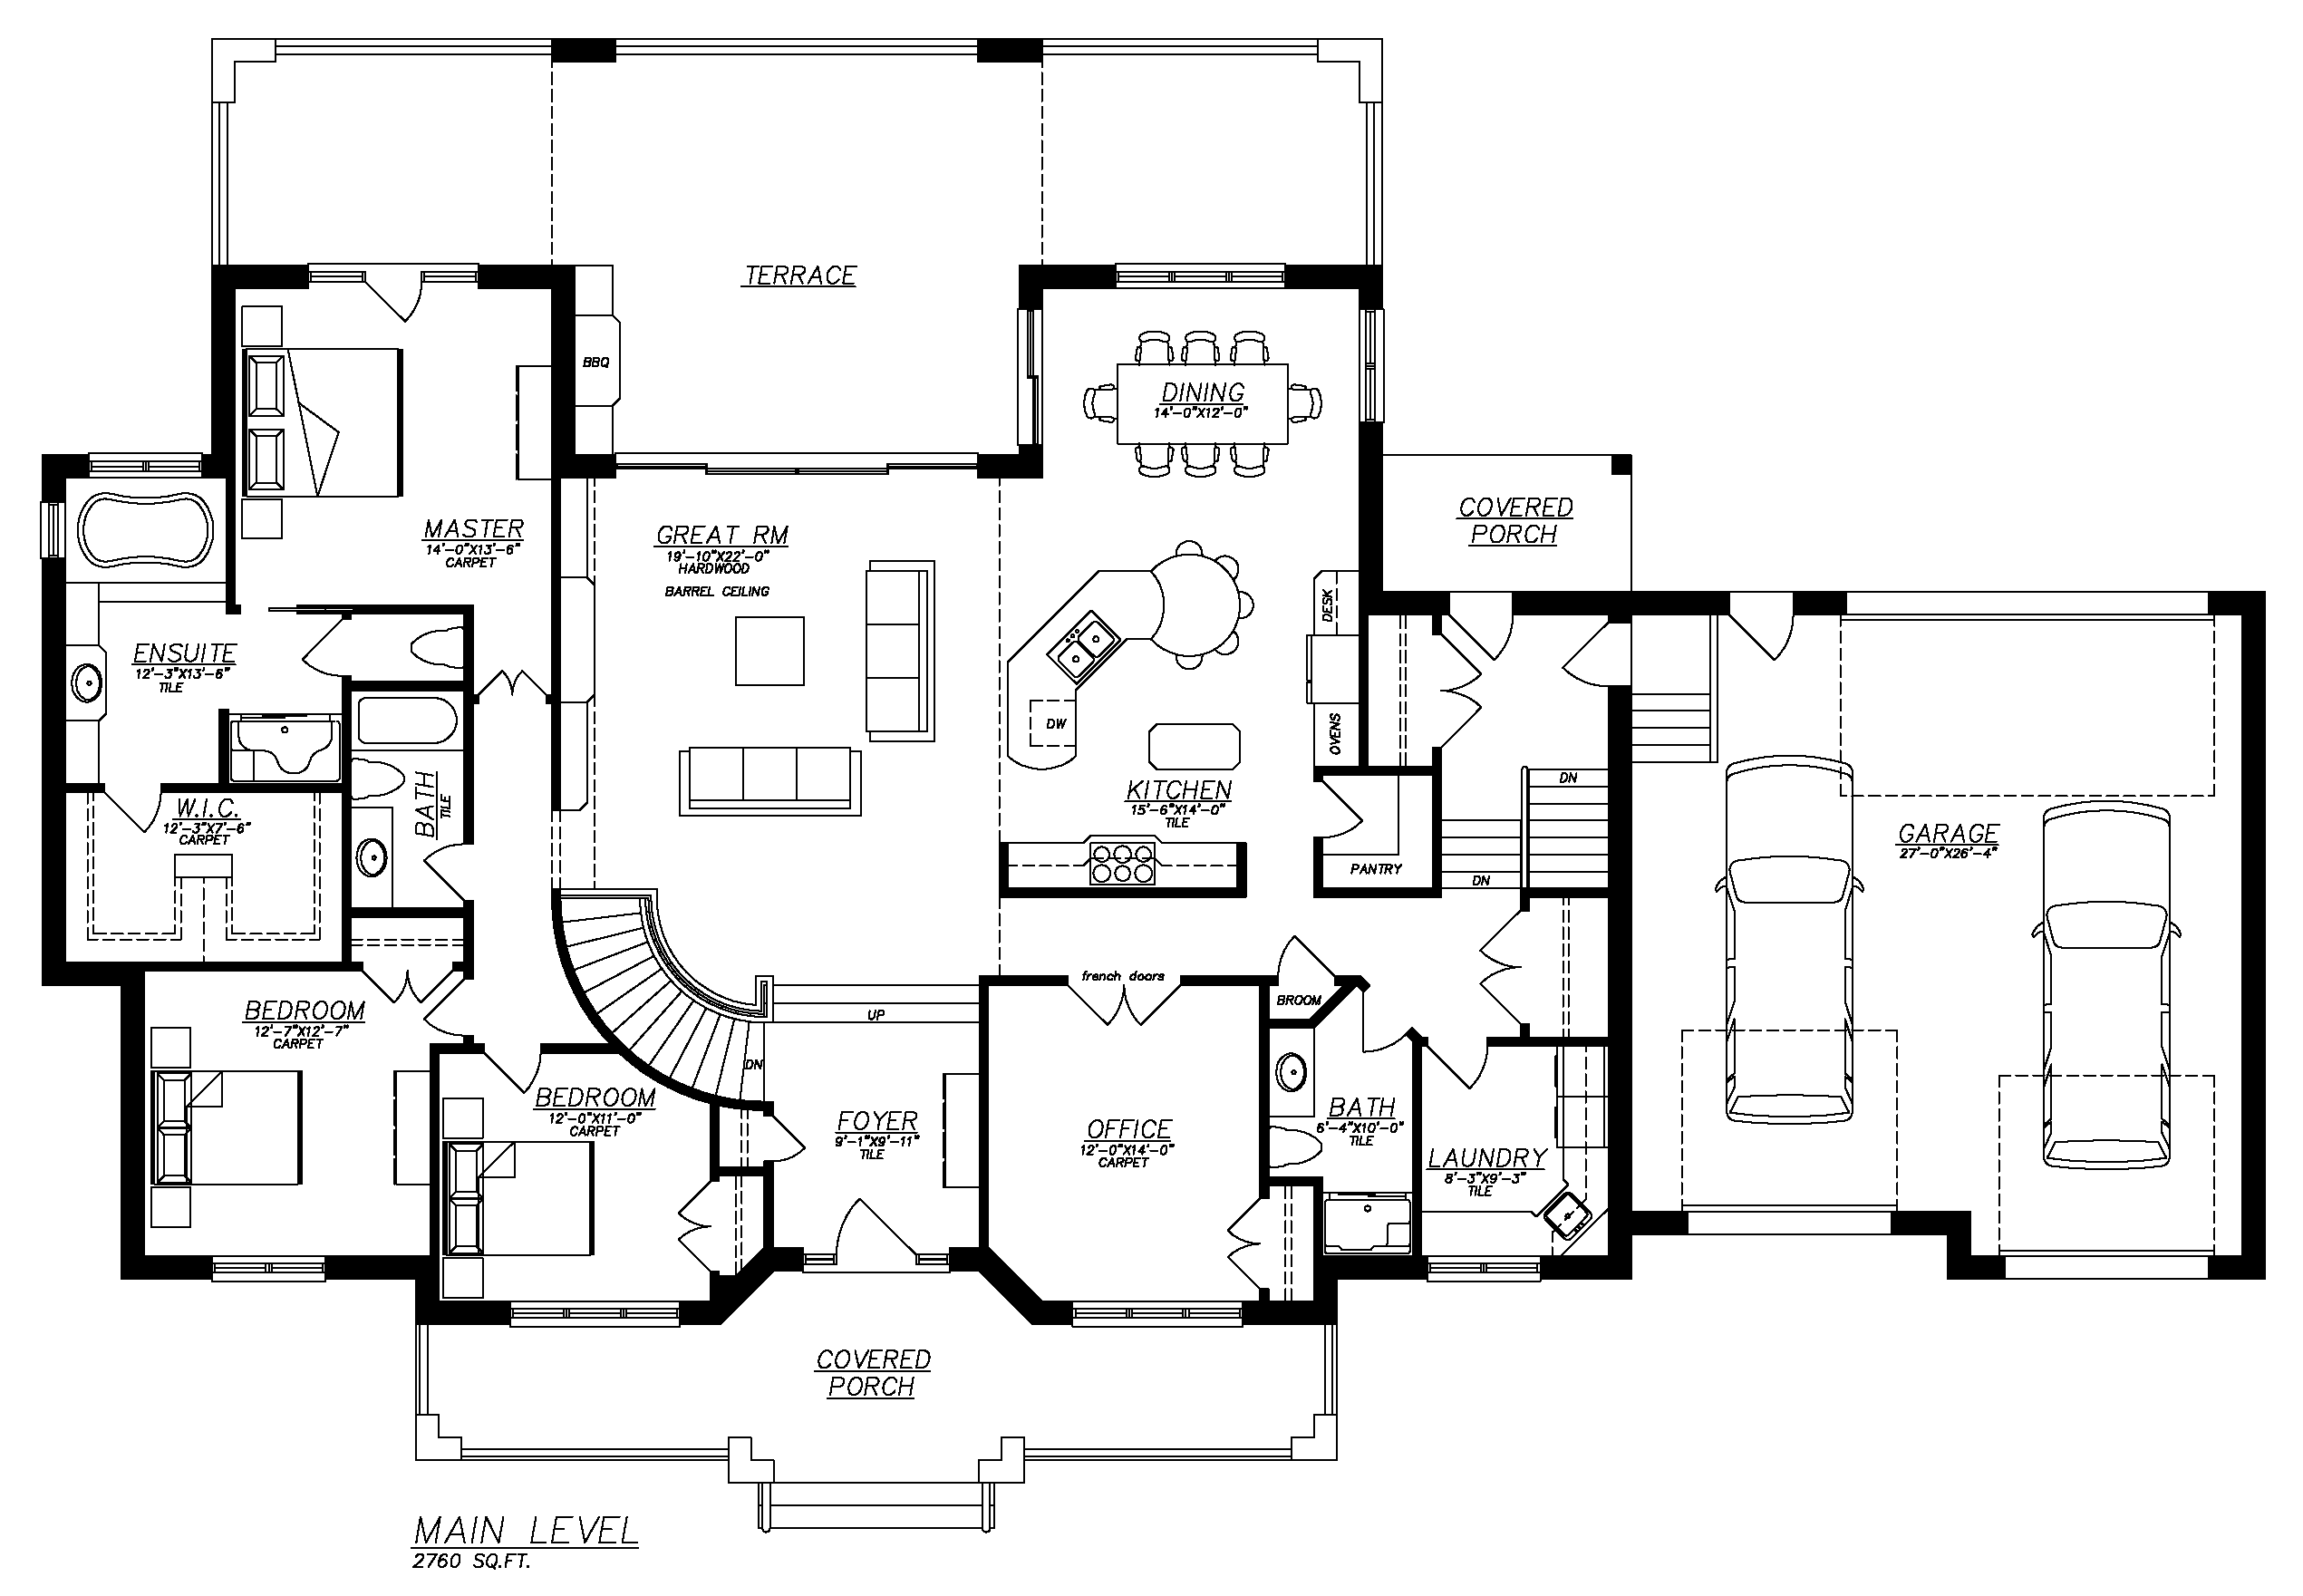 Stinson s gables oke woodsmith building systems inc for Basement home plans designs